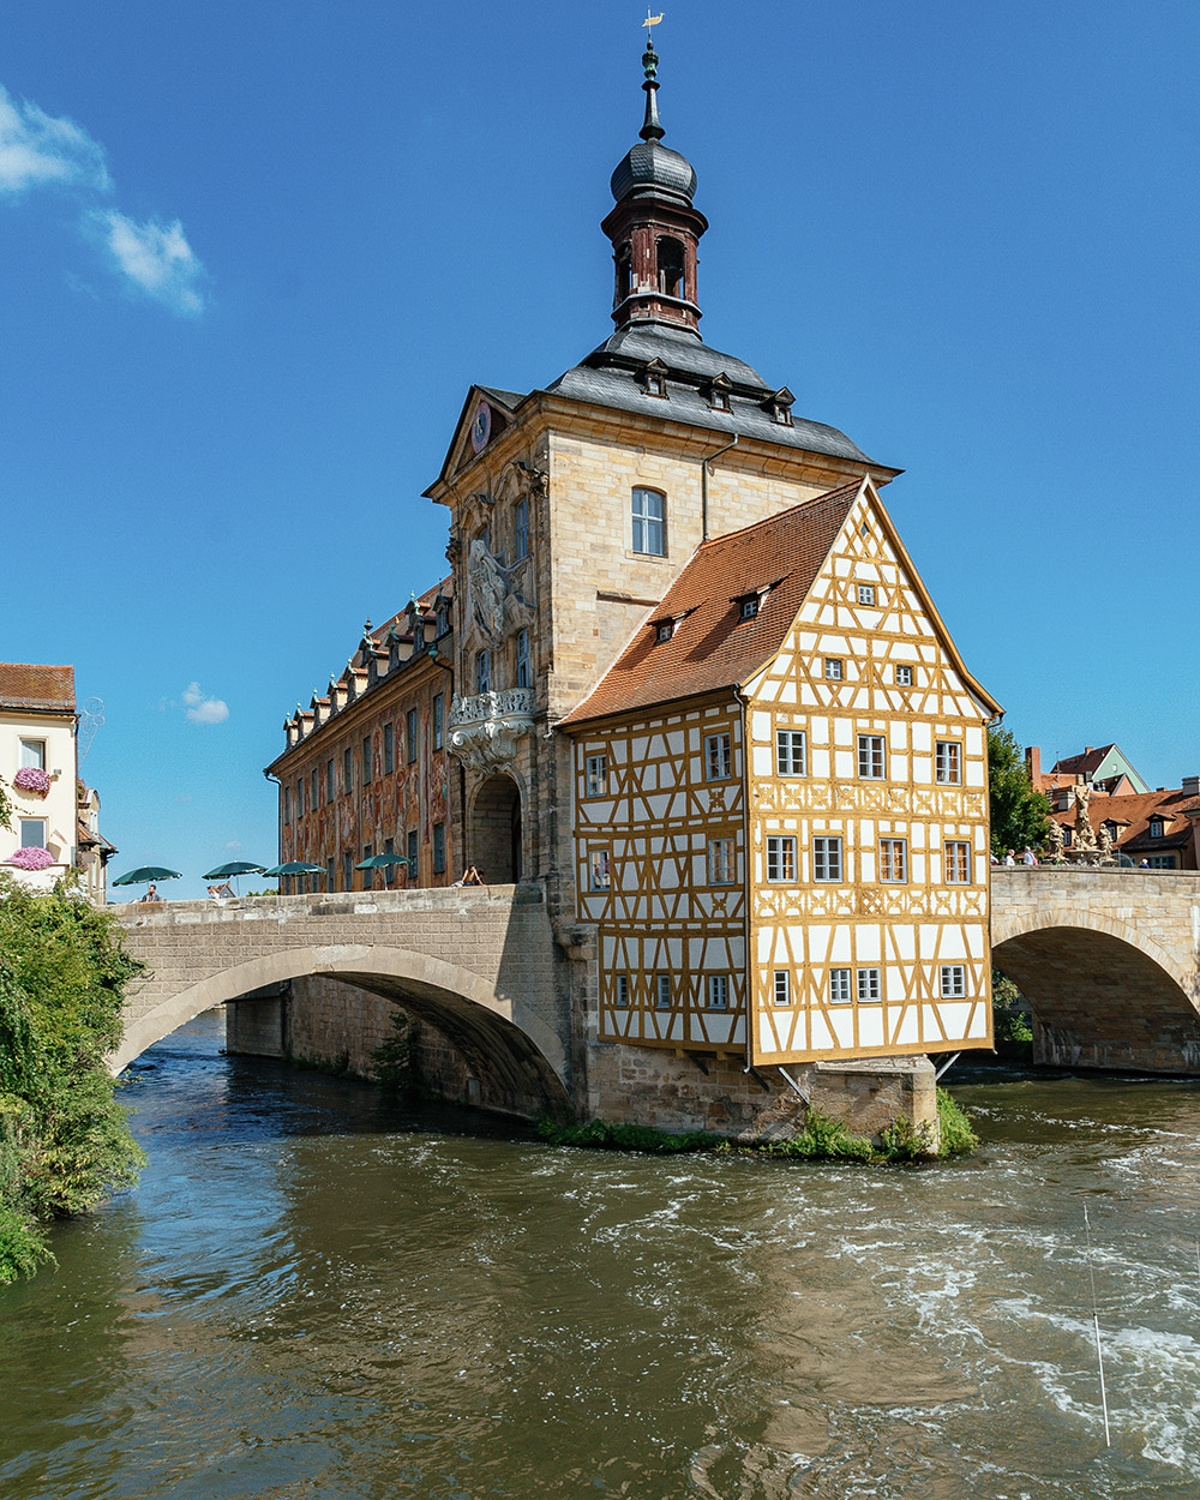 Bamberg City Hall near Munich, Germany Photo: Annees de Pelerinage